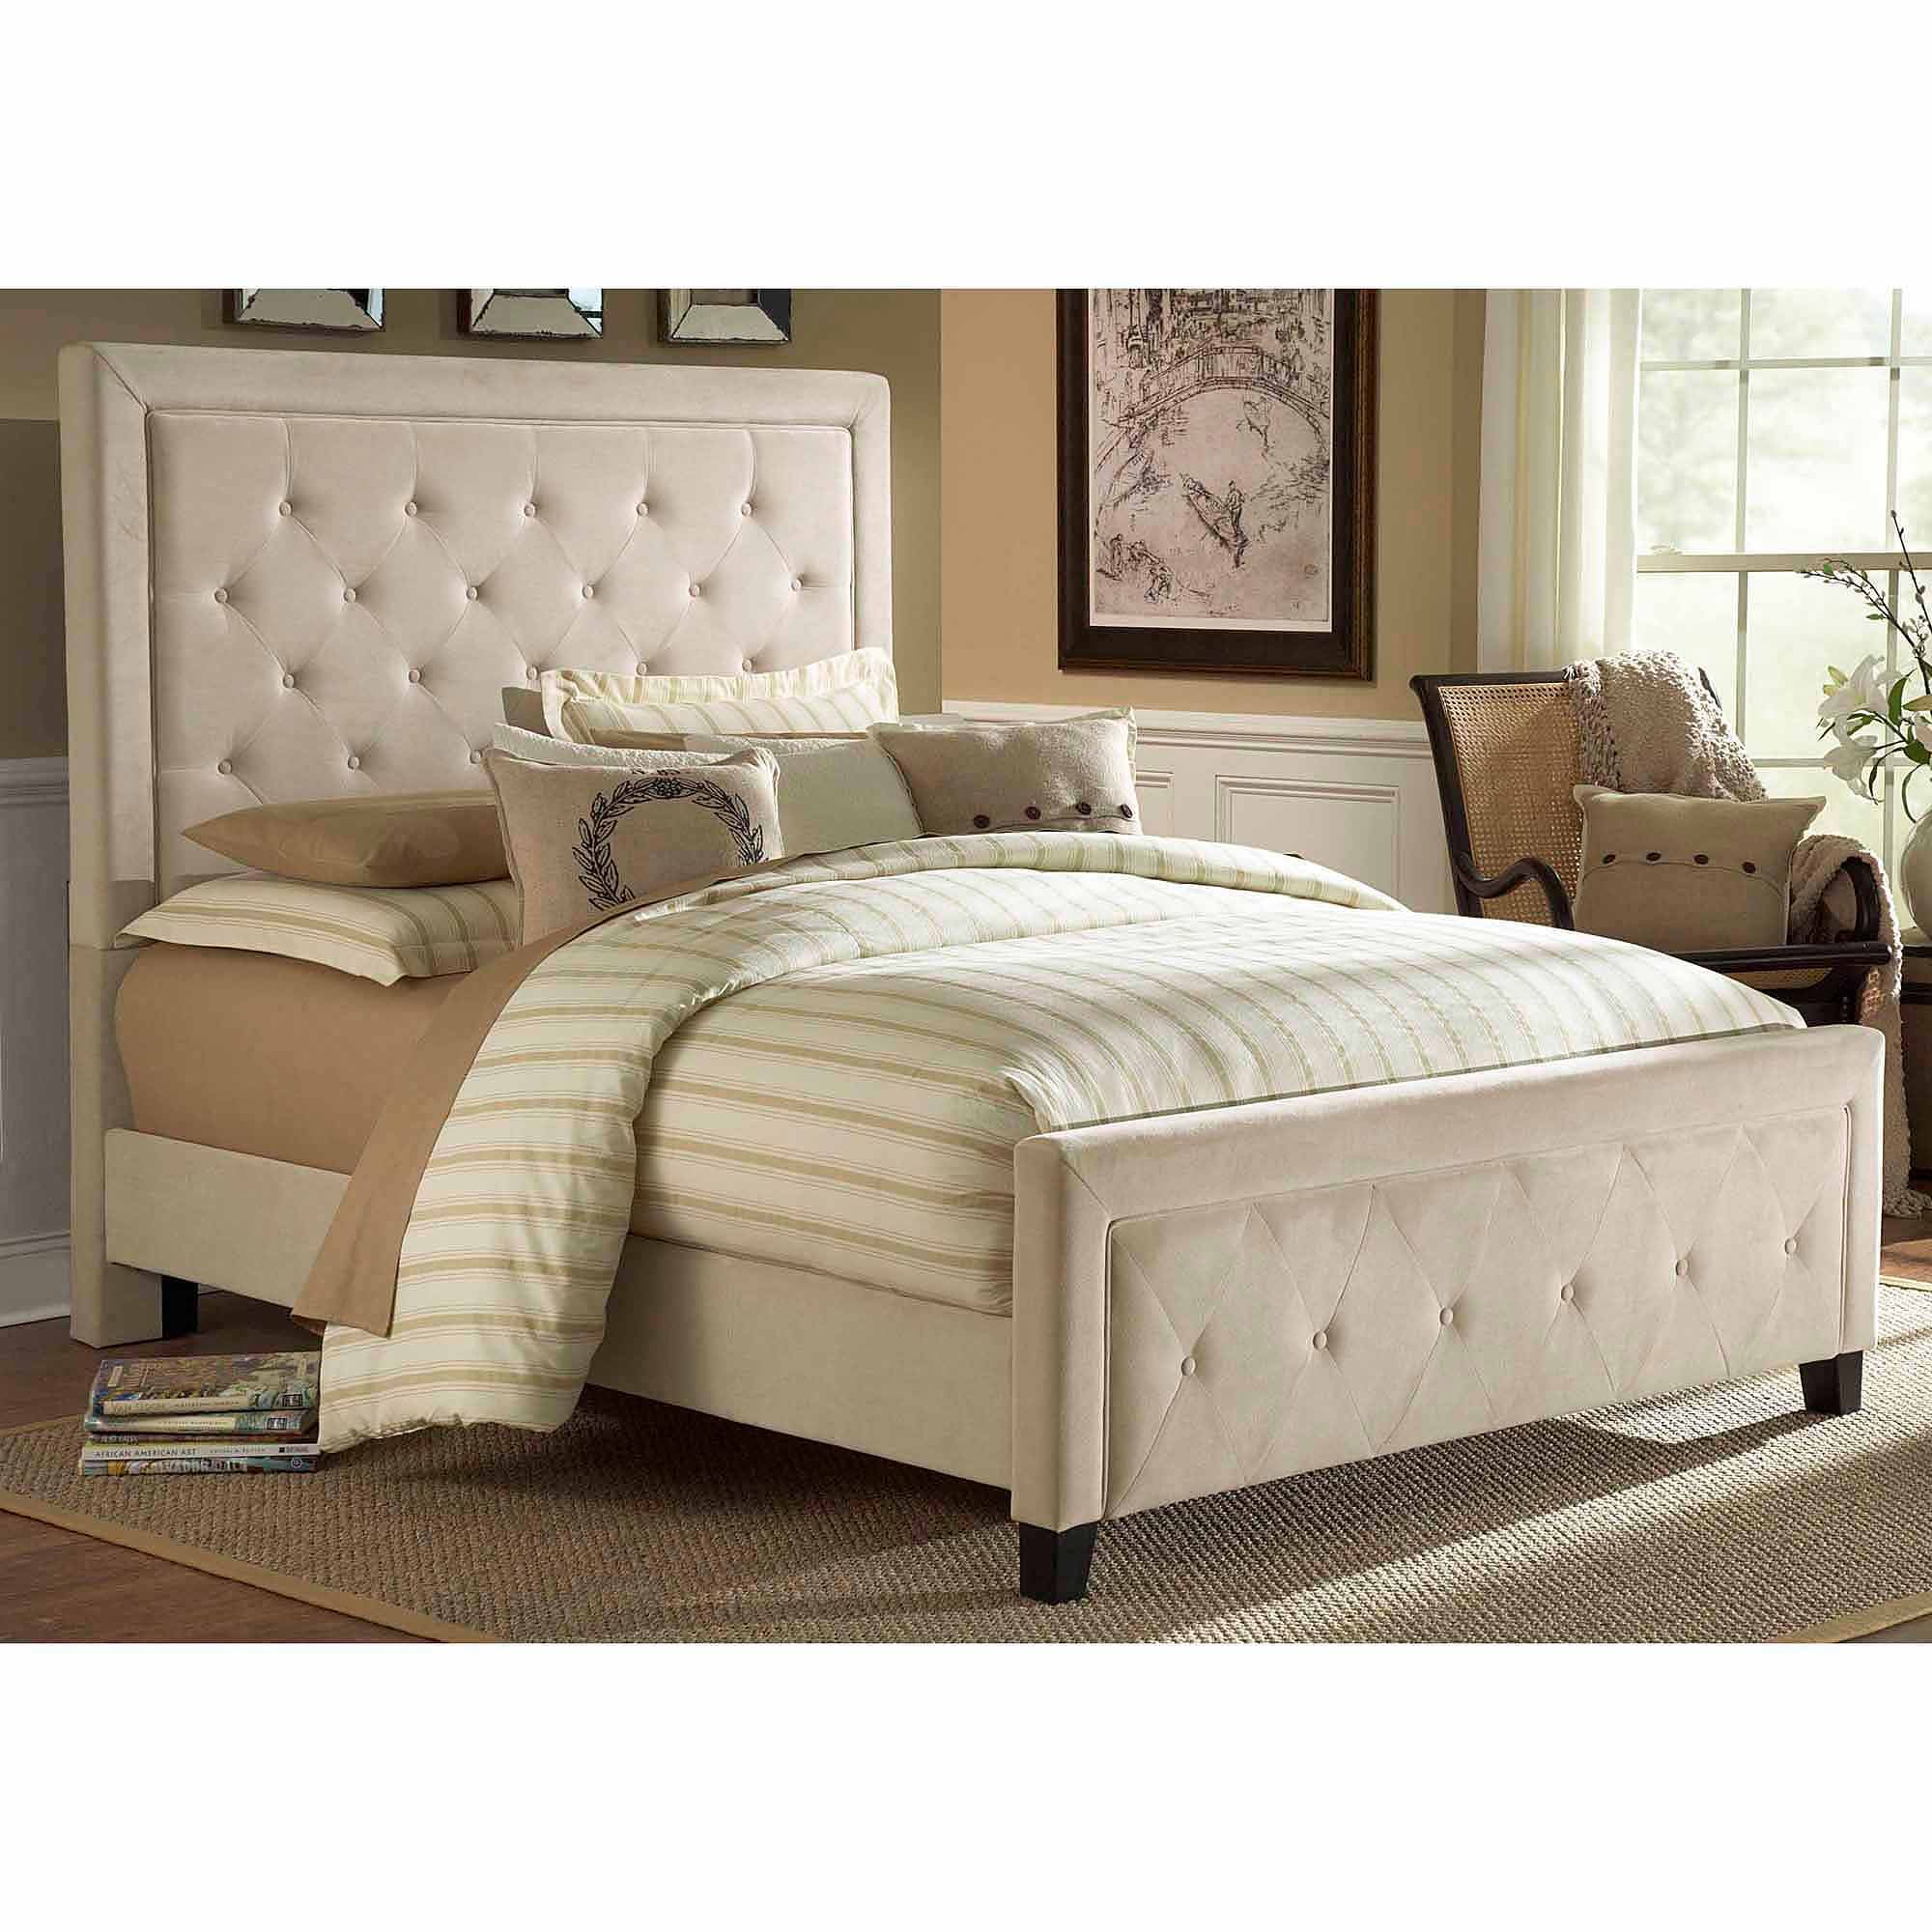 Hillsdale Furniture Kaylie Headboard, King, Buckwheat